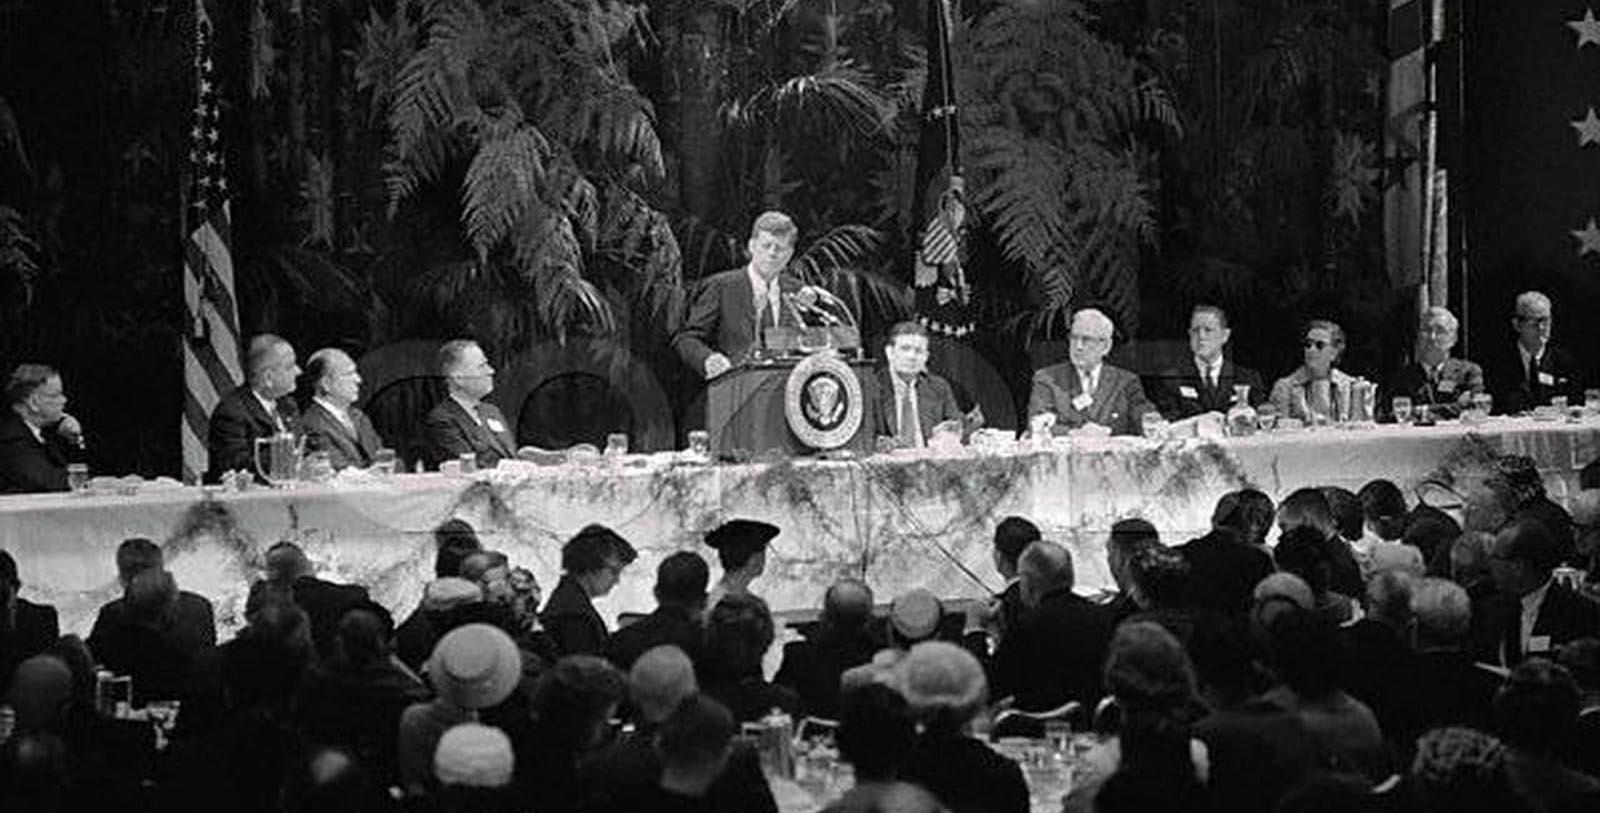 Historic Image of John F Kennedy and crowd at Capital Hilton, 1943, Member of Historic Hotels of America, in Washington, District of Columbia, Discover